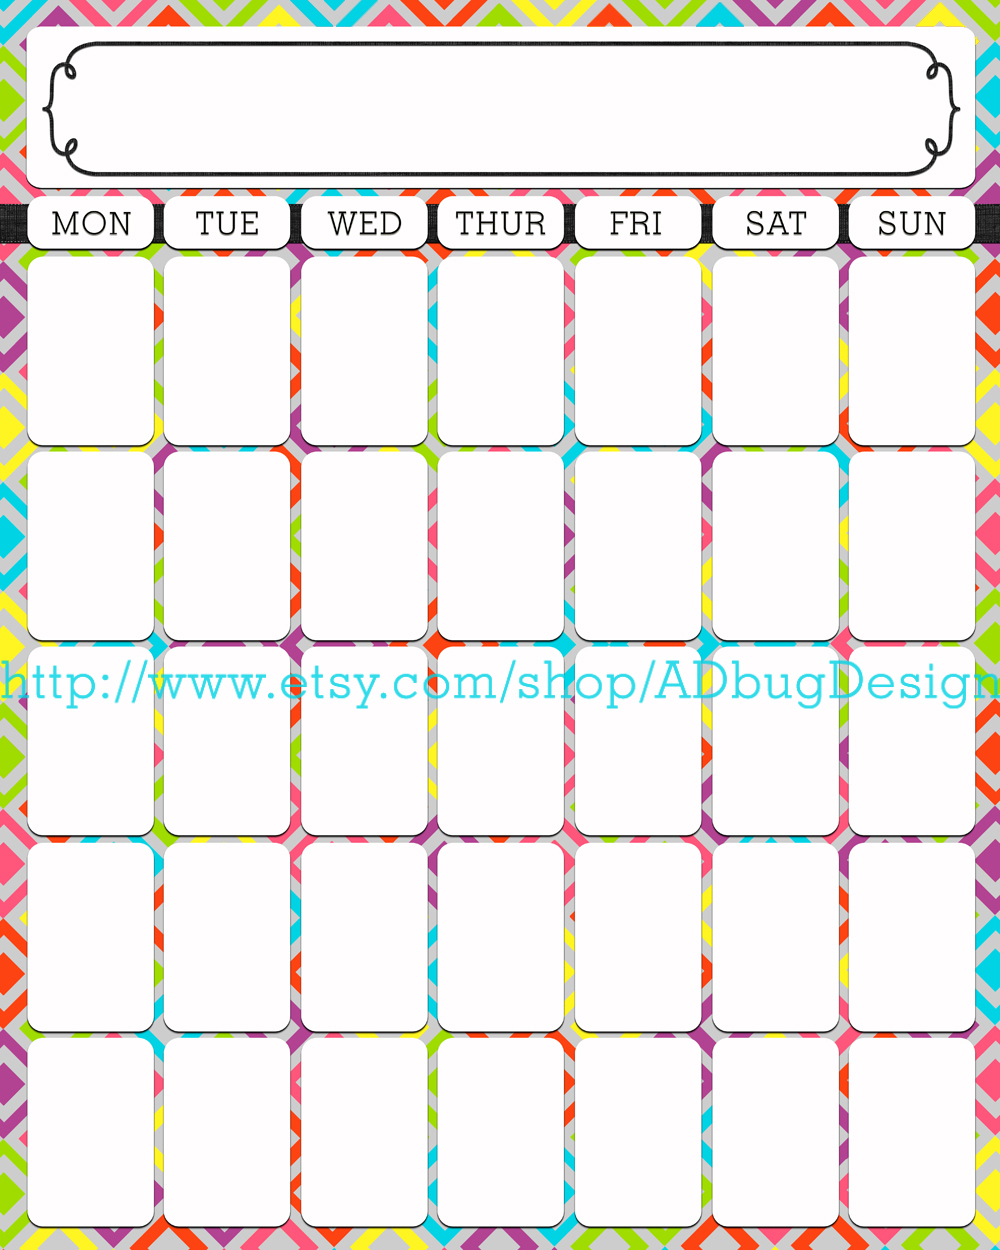 ADbug Photography Blog: Calendar Template